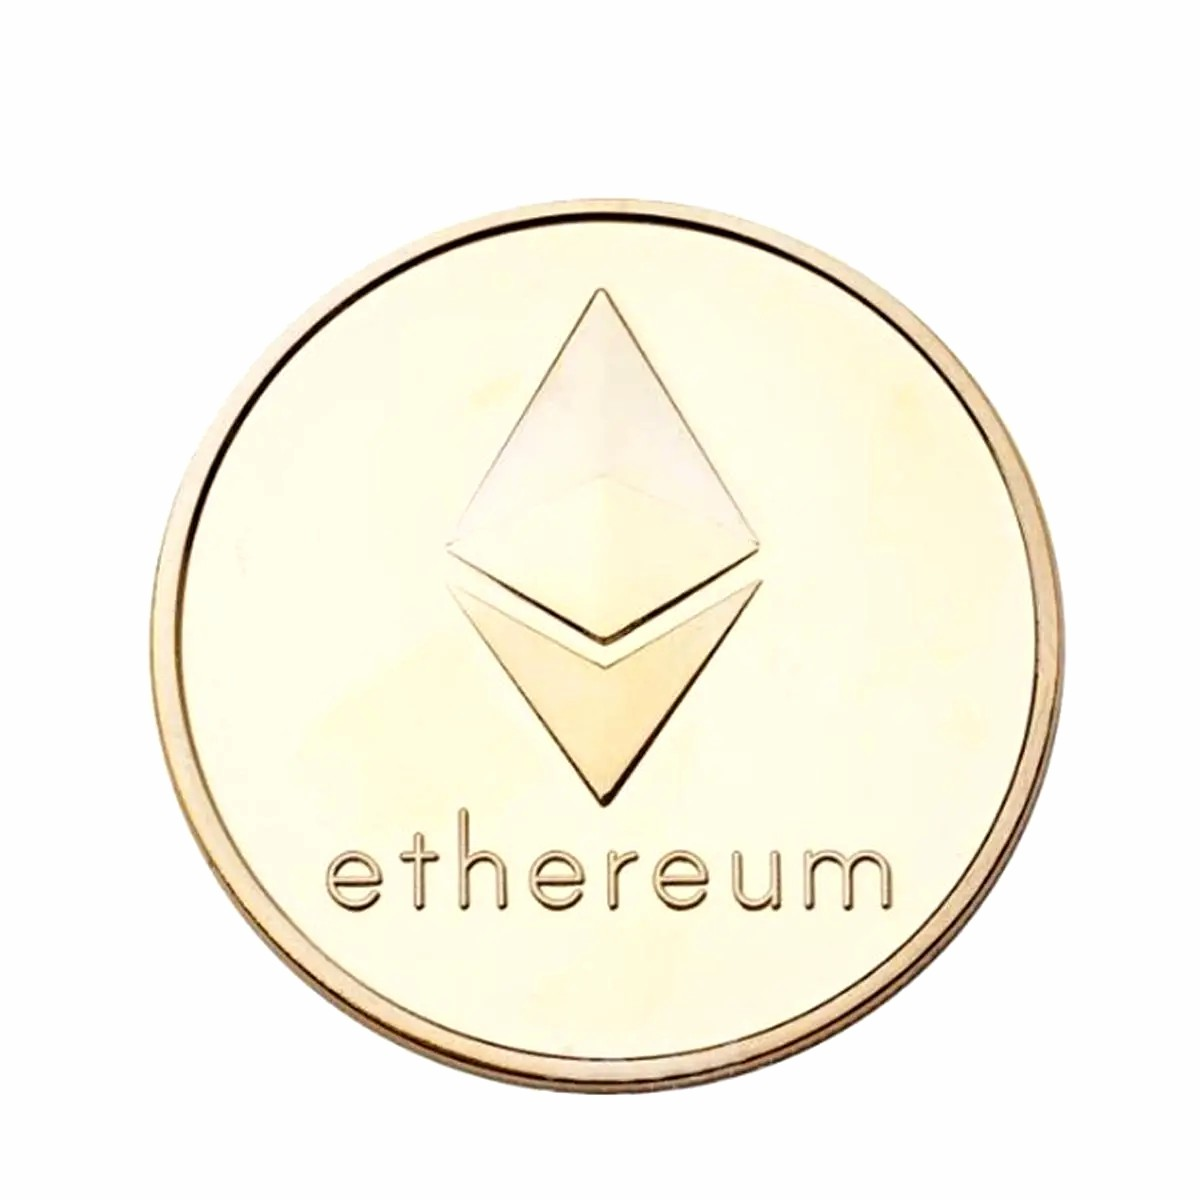 Ethereum digital currency